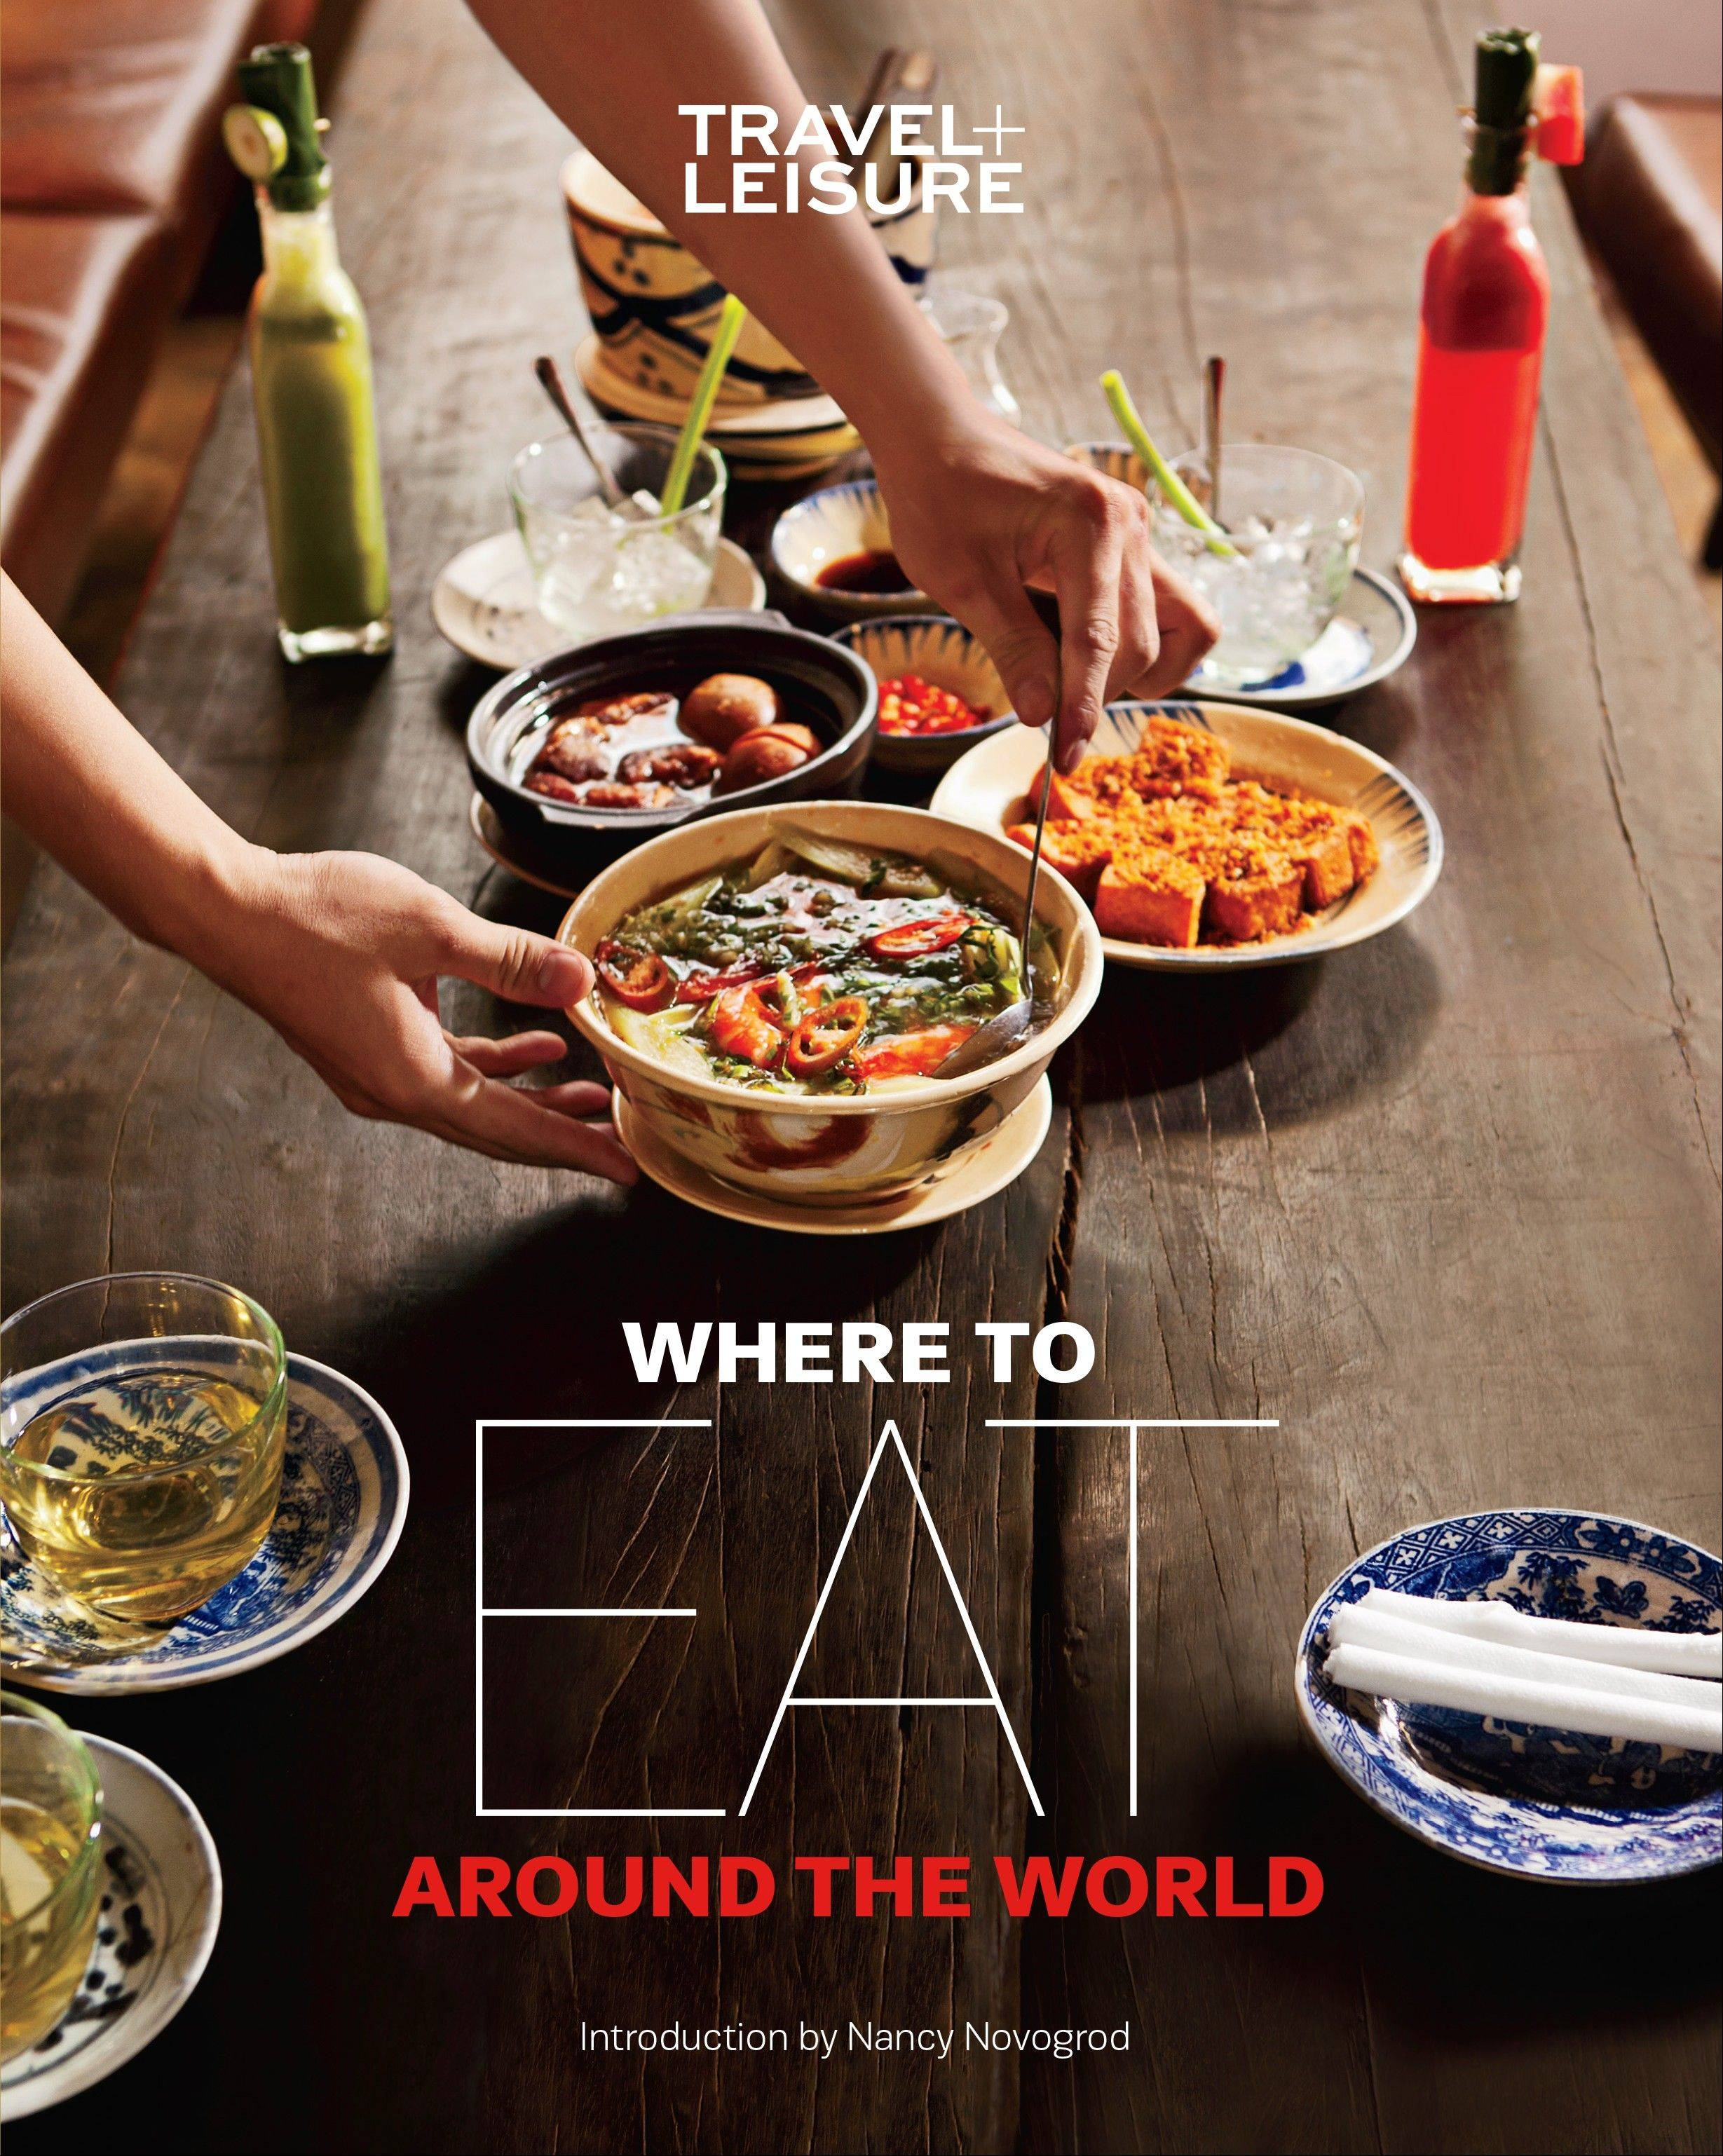 """Where to Eat Around the World"" spotlights food in 27 destinations, from the lunch canteens and taverns of Istanbul to barbecue in Texas. Many travelers are passionate about food, whether it's enjoying that perfect meal on vacation or hunting down authentic local cuisine."